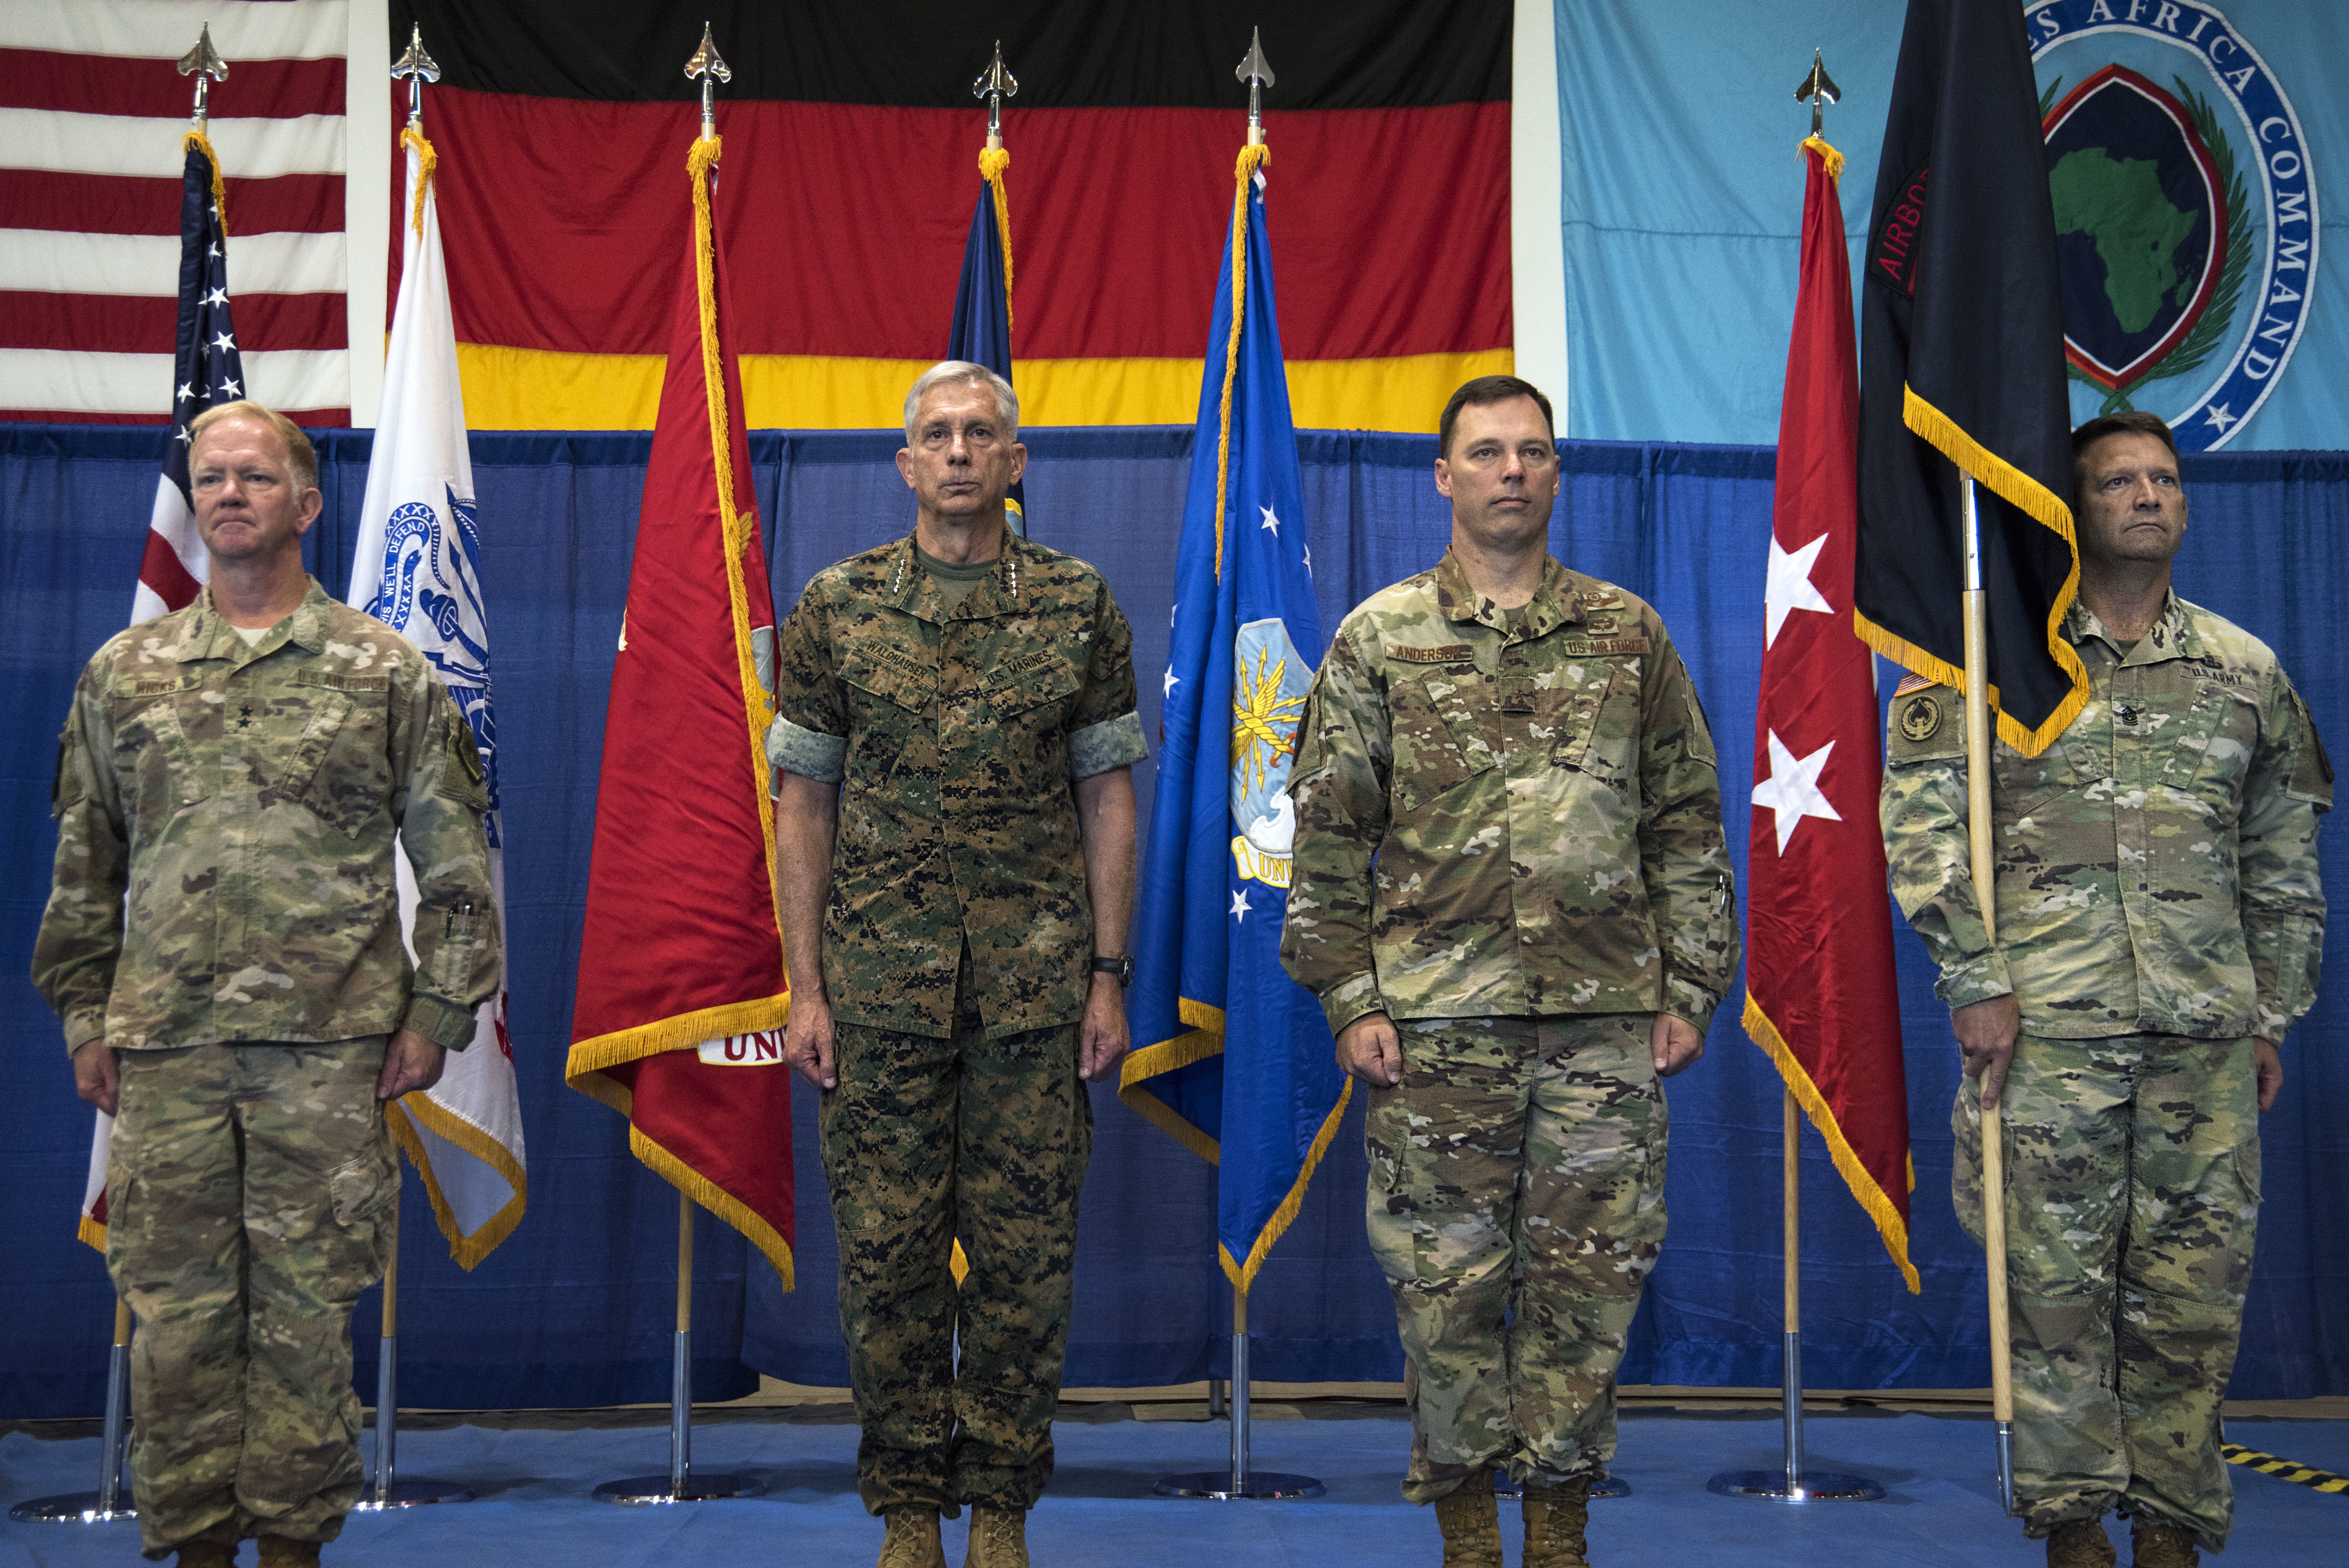 The official party stands at attention following the passing of the Special Operations Command Africa guidon during the SOCAFRICA change of command ceremony at Kelley Barracks, Stuttgart, Germany, June 28, 2019. Special Operations Command Africa supports U.S. Africa Command by counter violent extremist organizations, building the military capacity of key partners in Africa and protecting U.S. personnel and facilities. (U.S. Navy photo by Mass Communication Specialist 1st Class Christopher Hurd/Released)